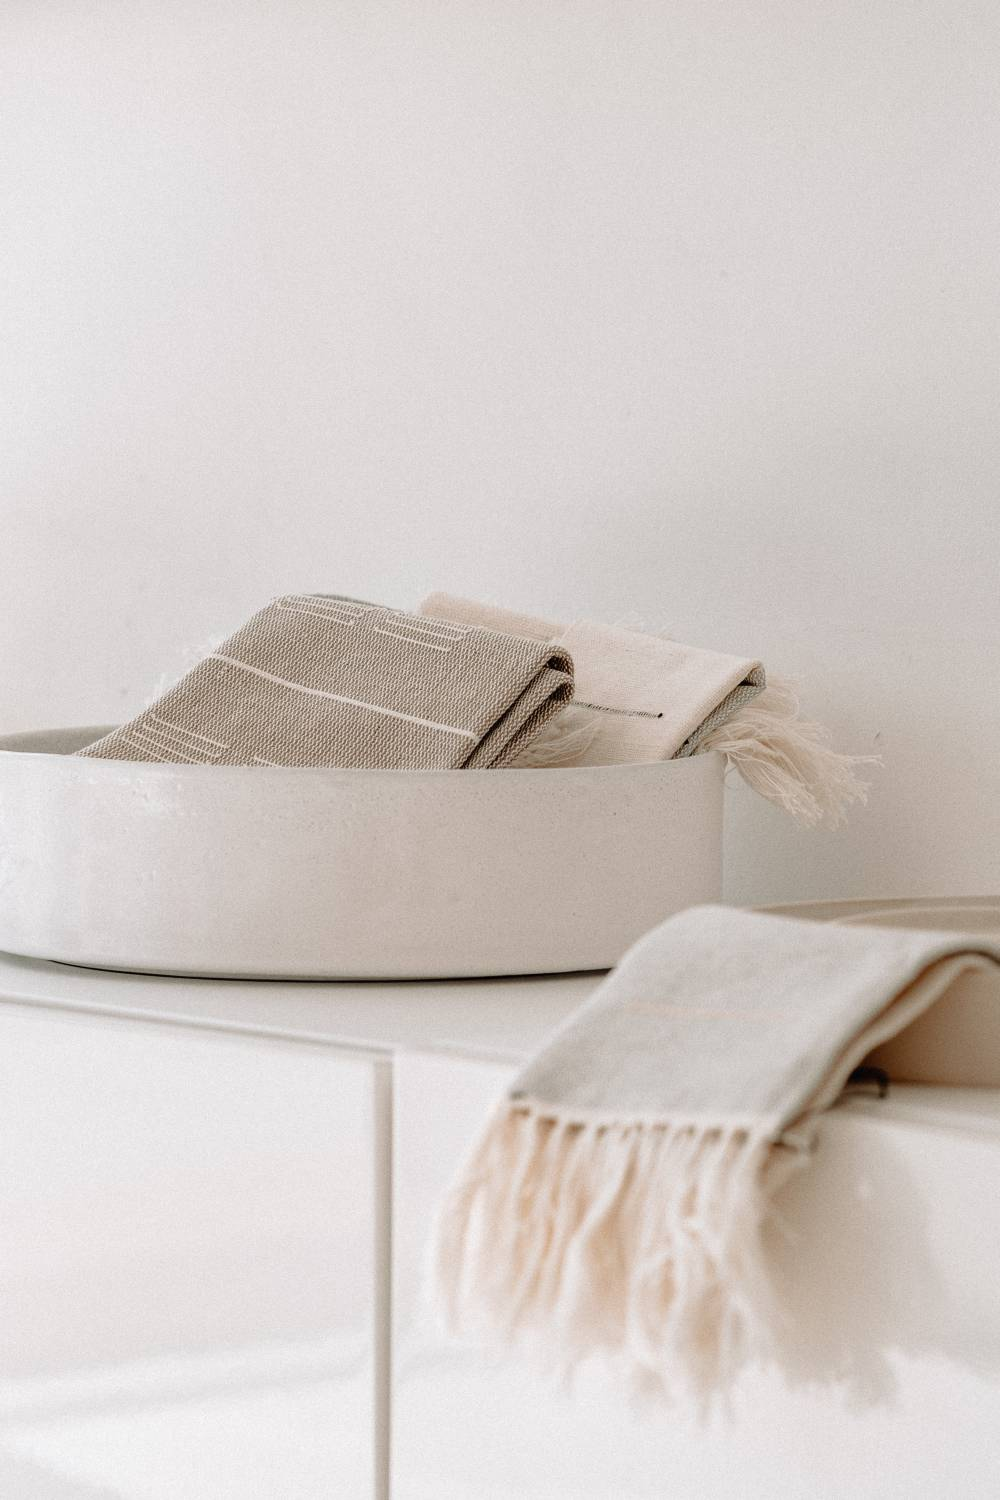 Sustainable Living COVID cotton towels